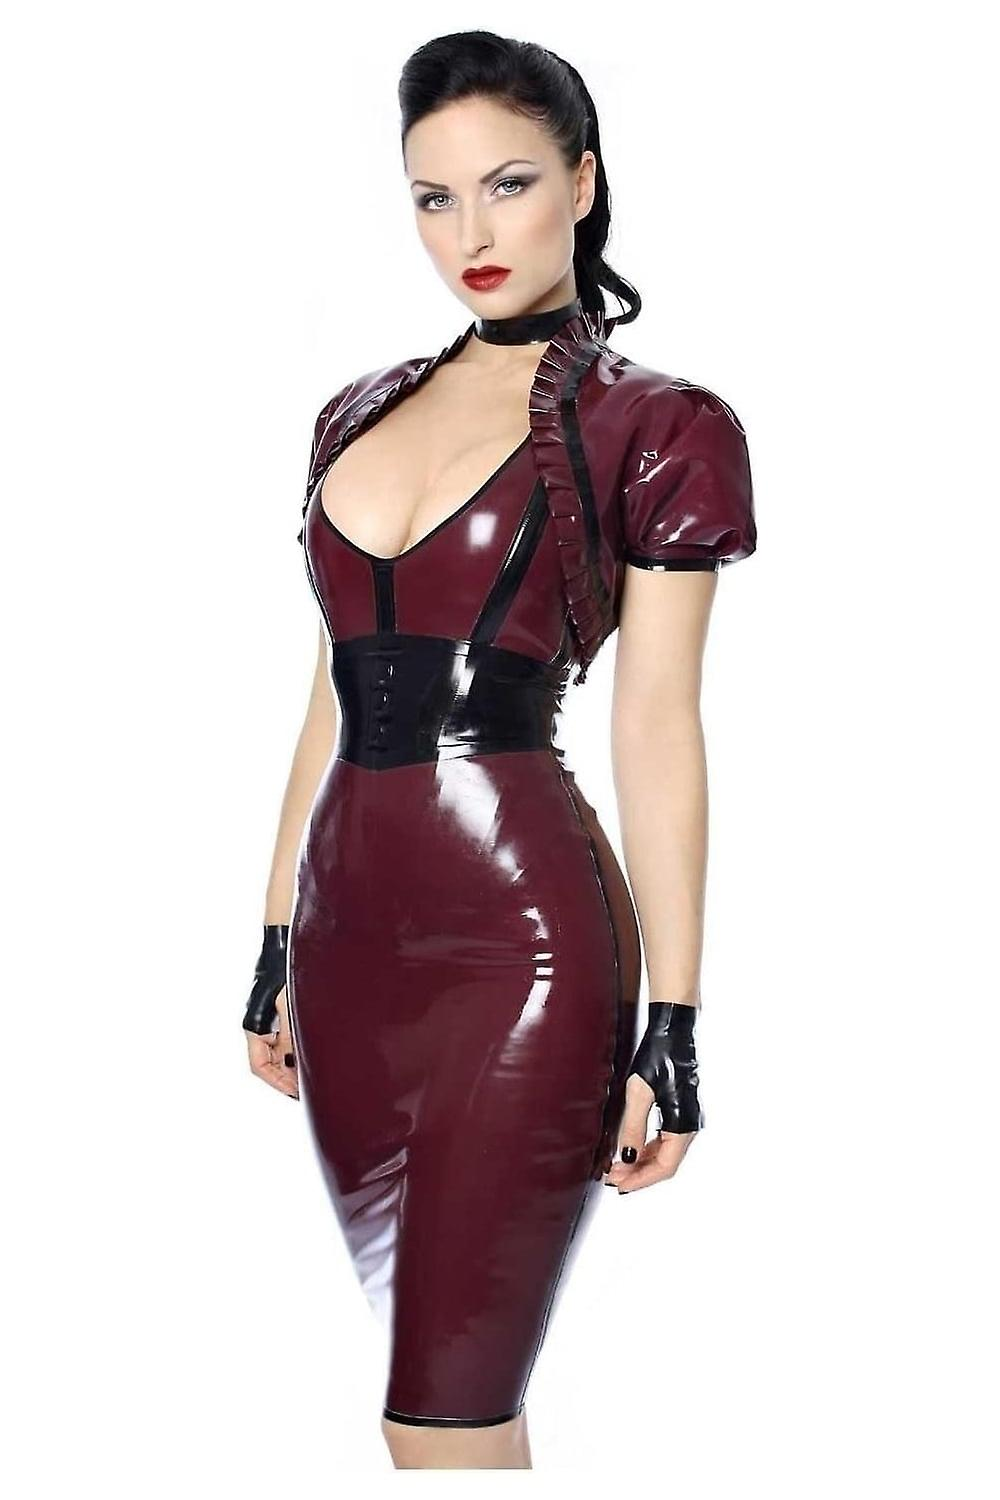 Bound in latex